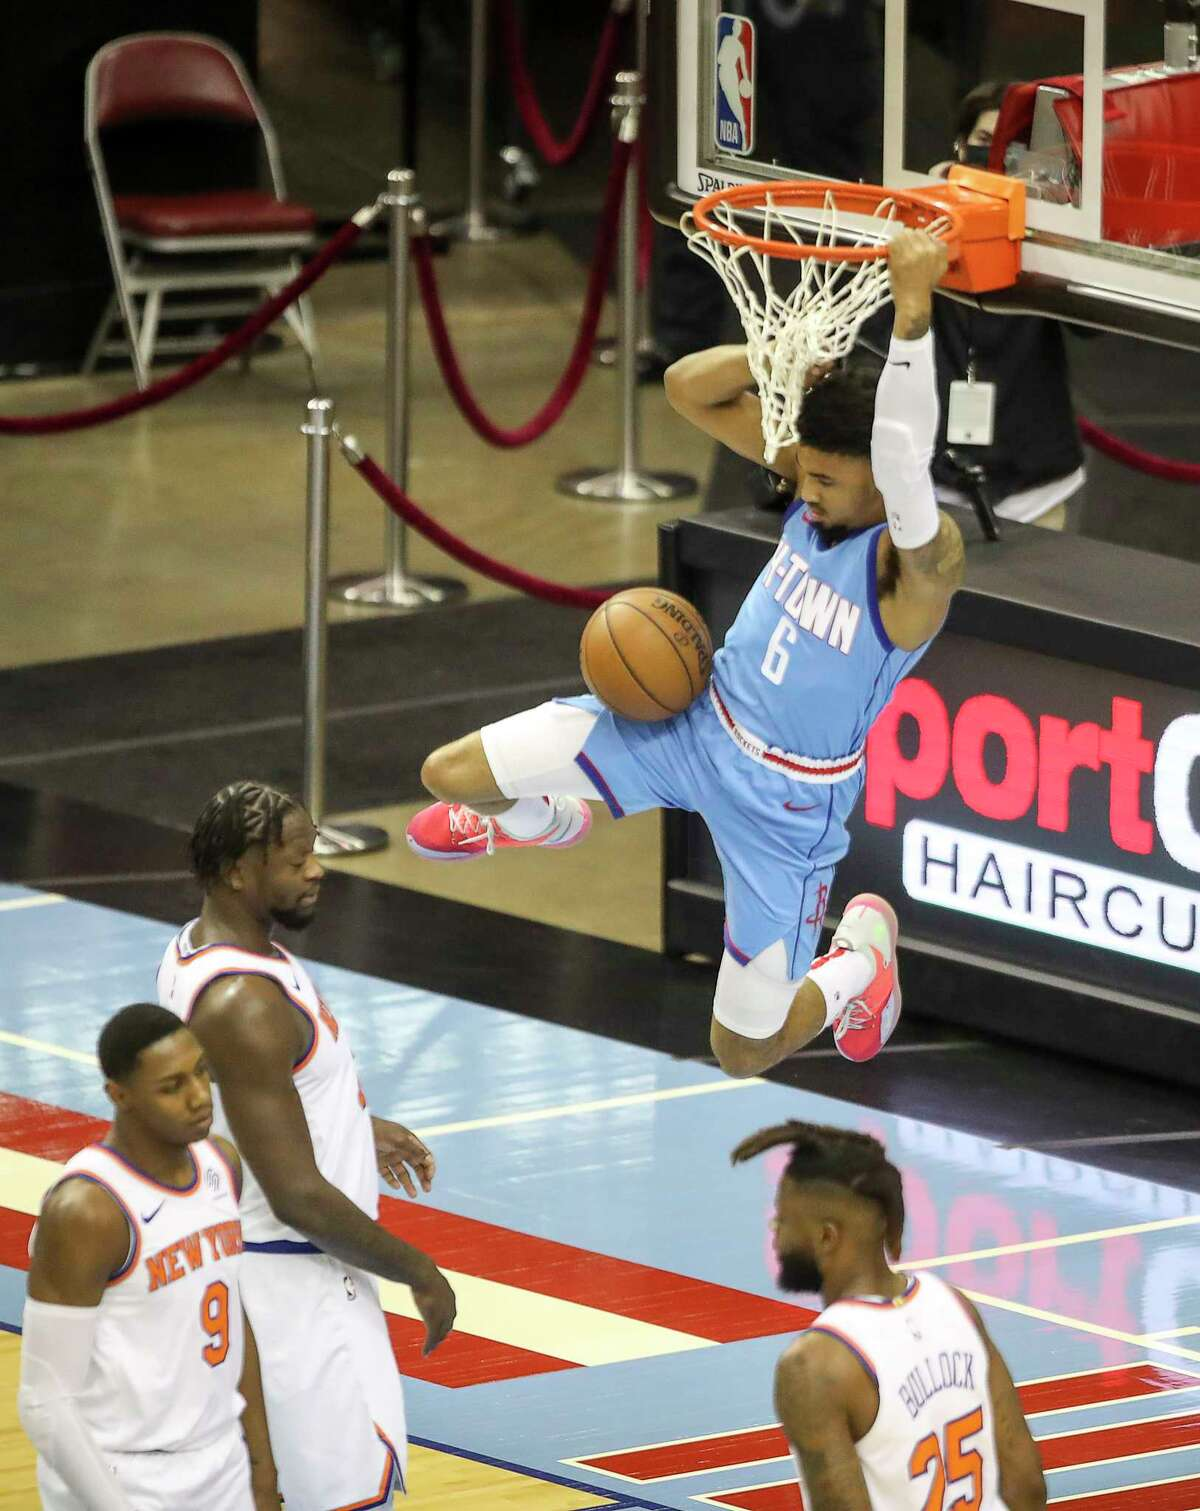 Houston Rockets forward Kenyon Martin Jr. (6) dunks the ball as New York Knicks guard RJ Barrett (9), forward Julius Randle (30) and forward Reggie Bullock (25) defend during the first quarter of an NBA game Sunday, May 2, 2021, at the Toyota Center in Houston.